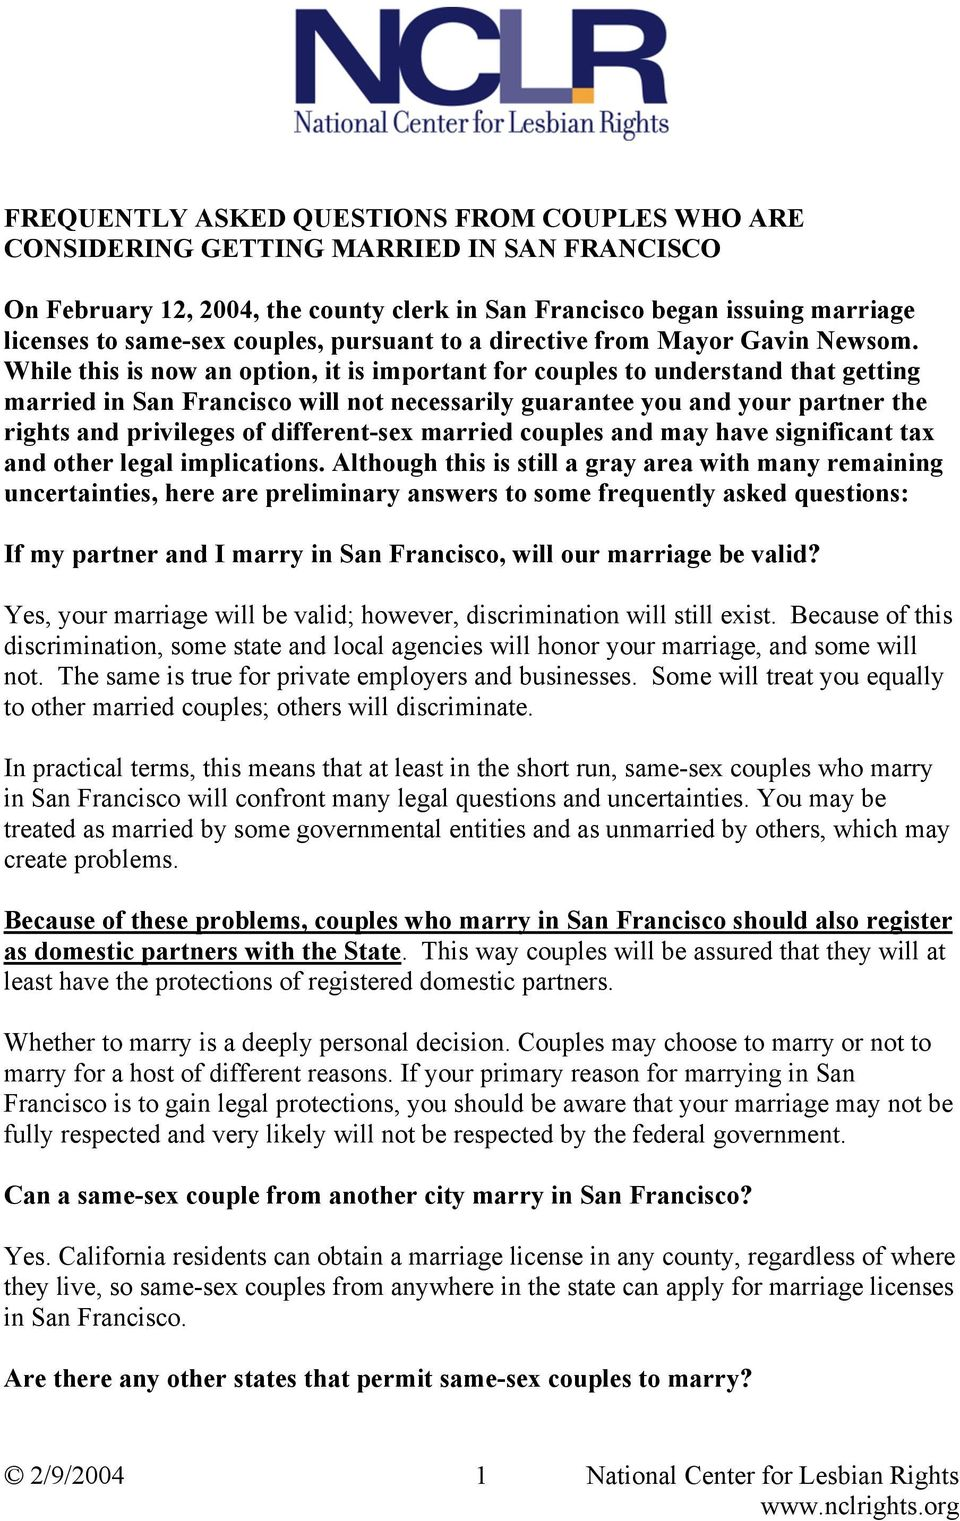 While this is now an option, it is important for couples to understand that getting married in San Francisco will not necessarily guarantee you and your partner the rights and privileges of